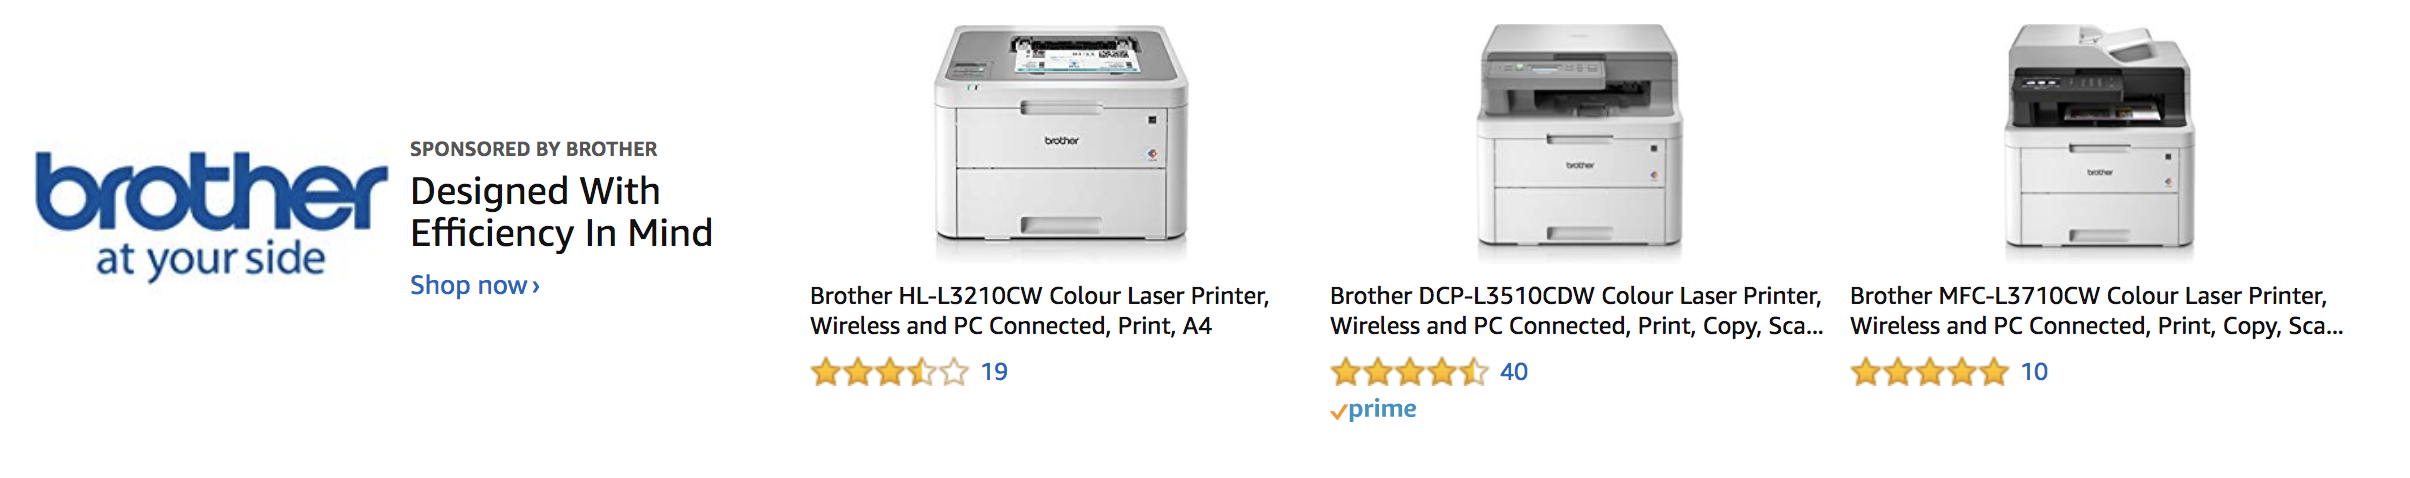 Screenshot of brand ad on Amazon for Brother printers.